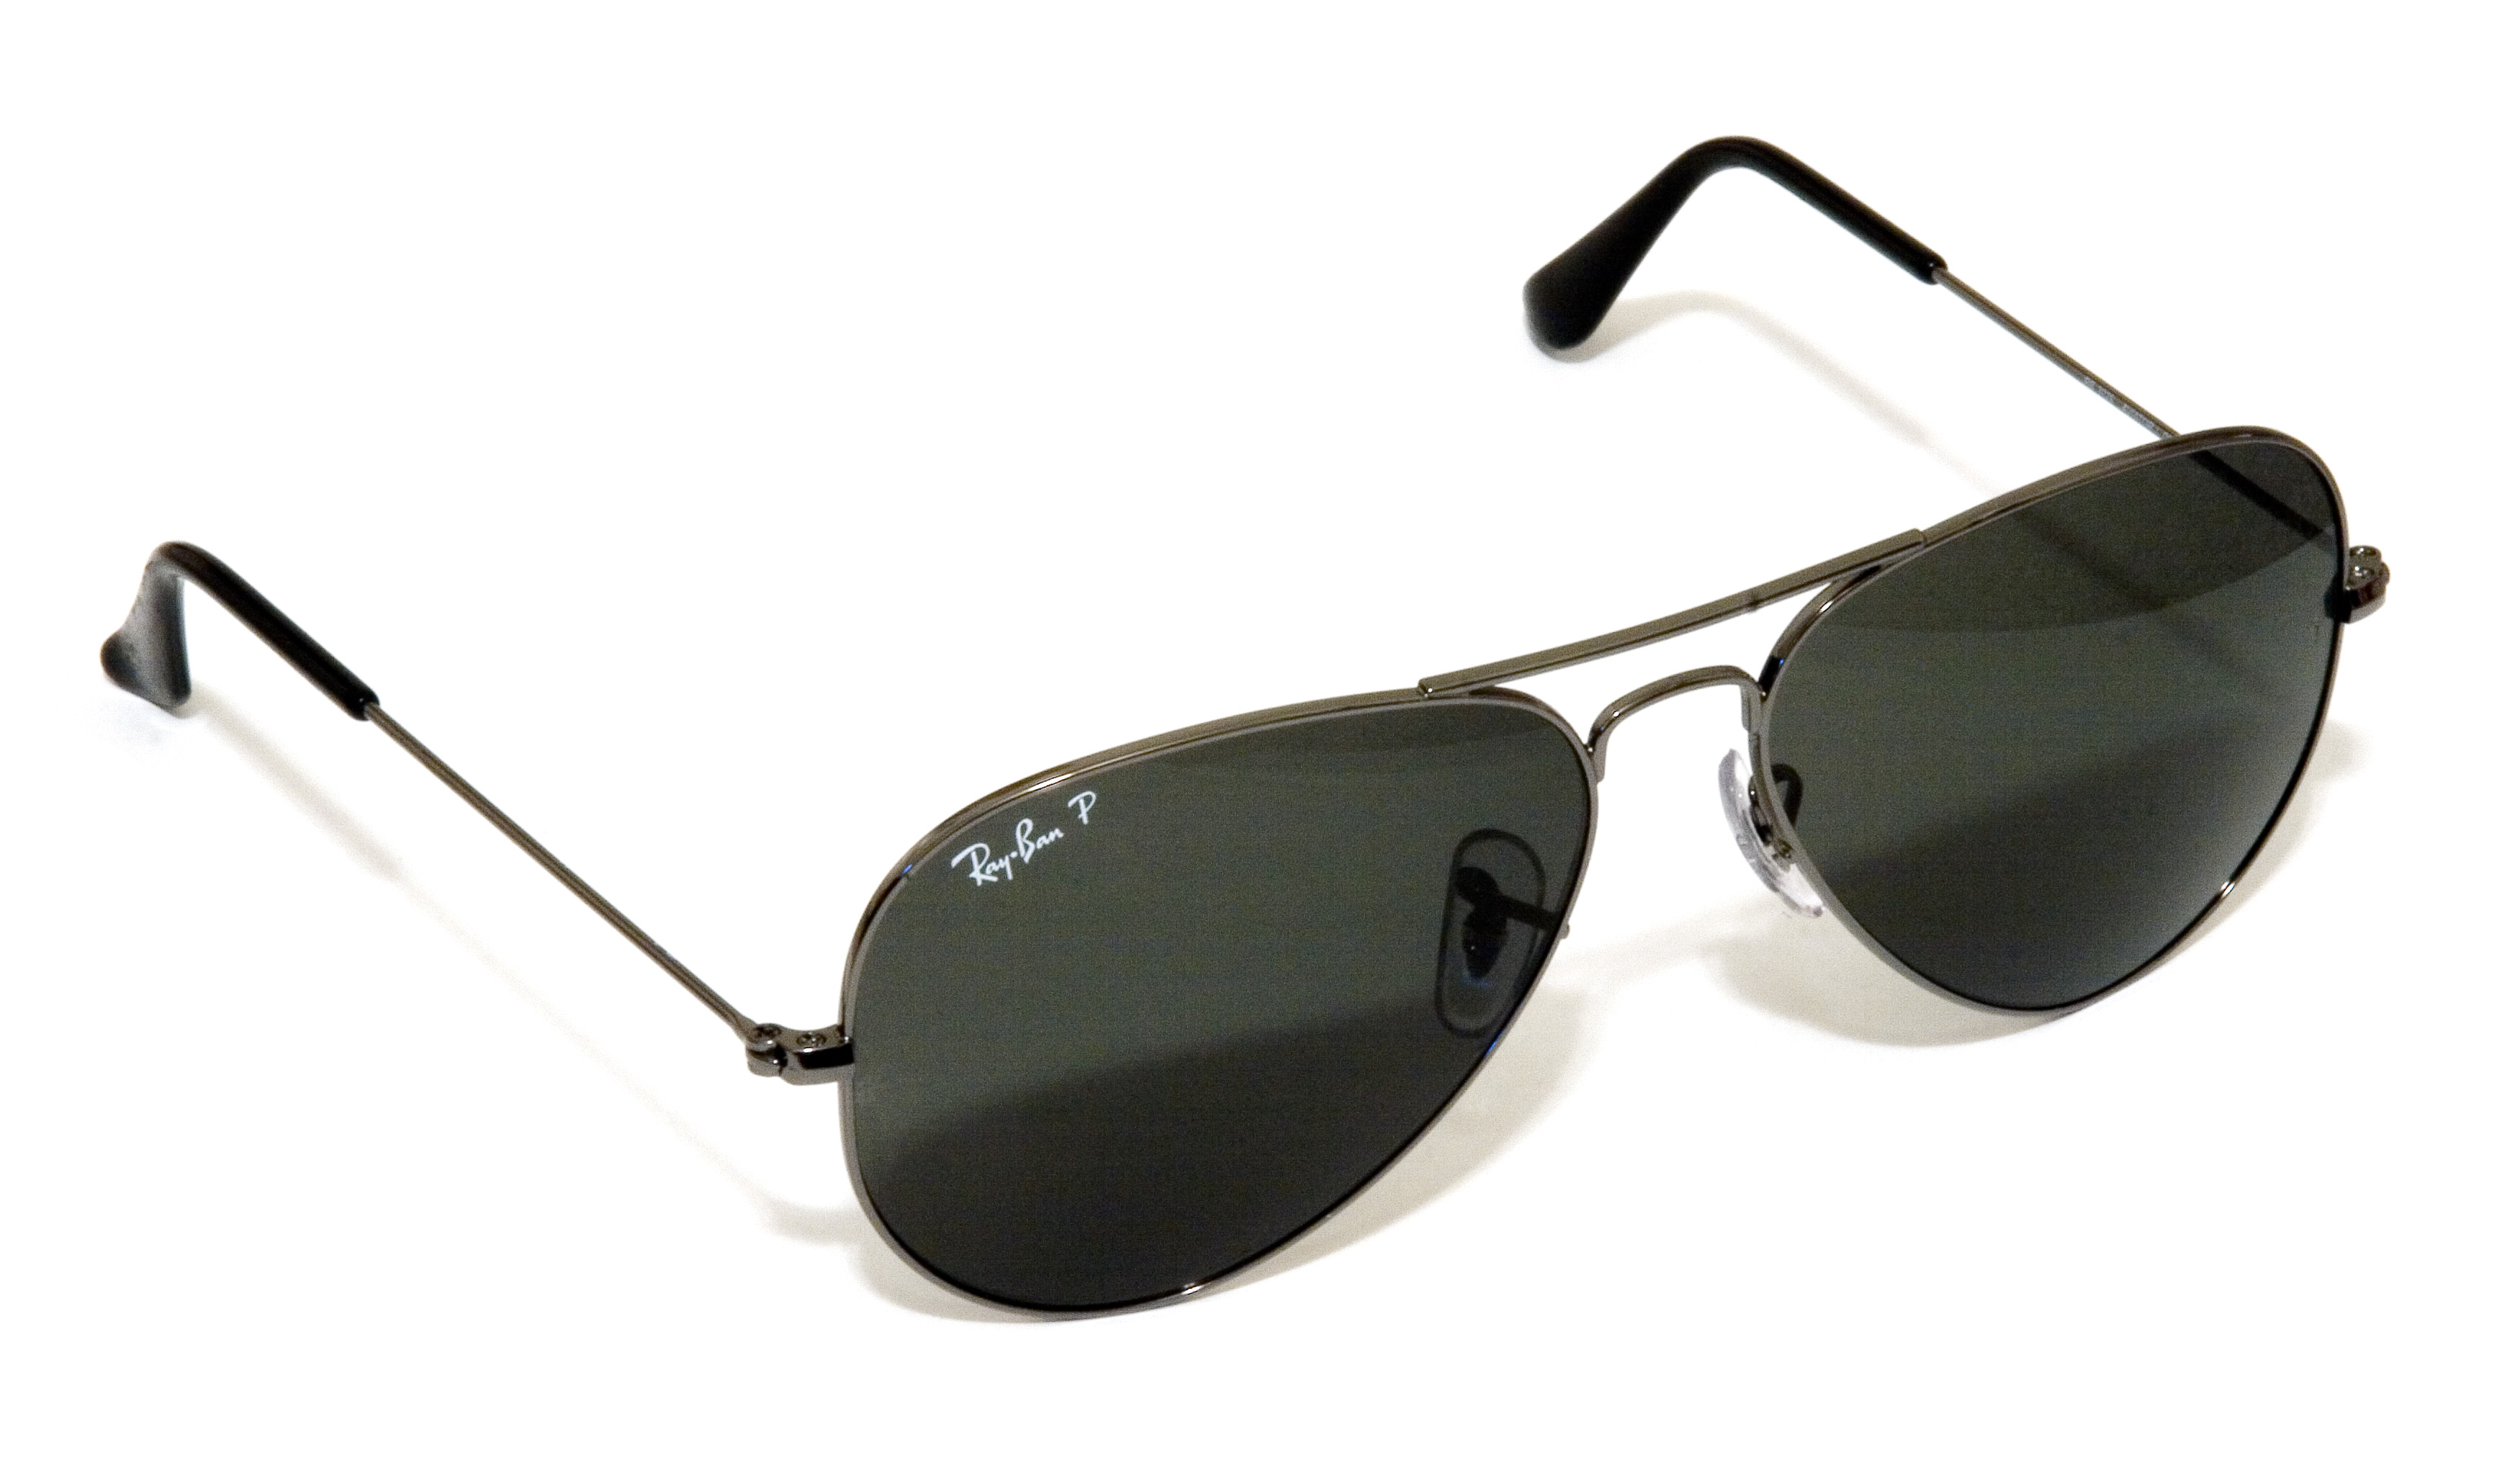 0fa888c76a Aviator sunglasses - Wikipedia